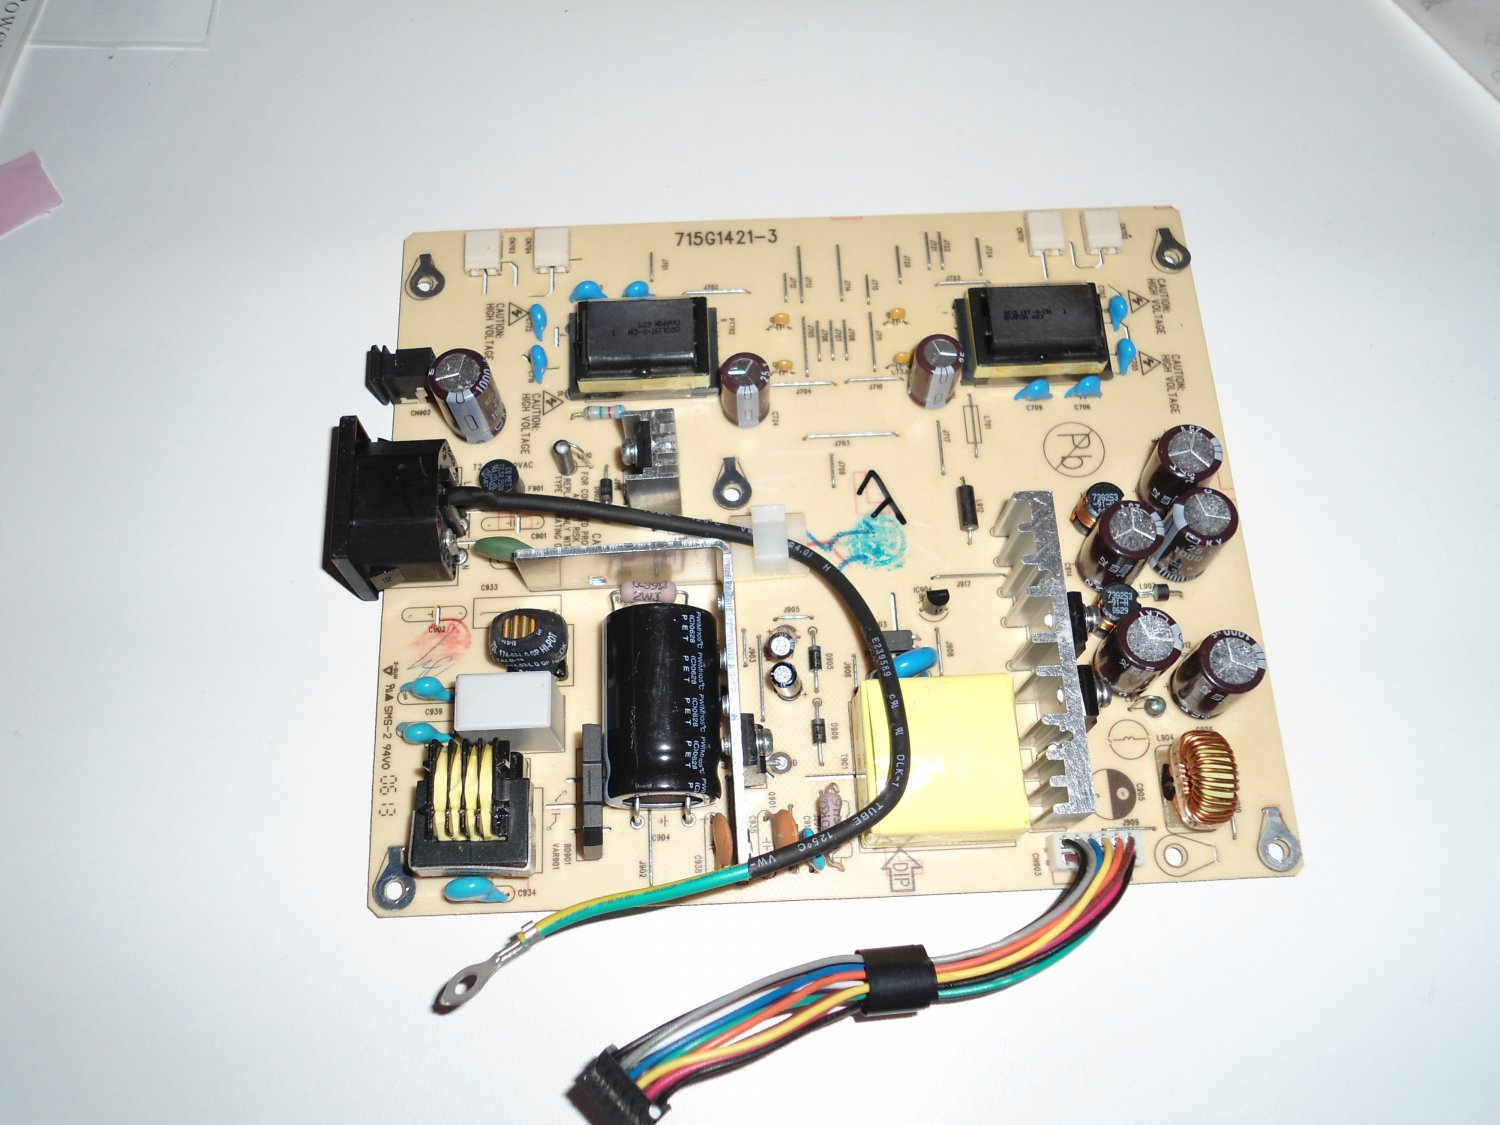 HP LCD power supply board 715G1421-3 high-voltage power supply board board board